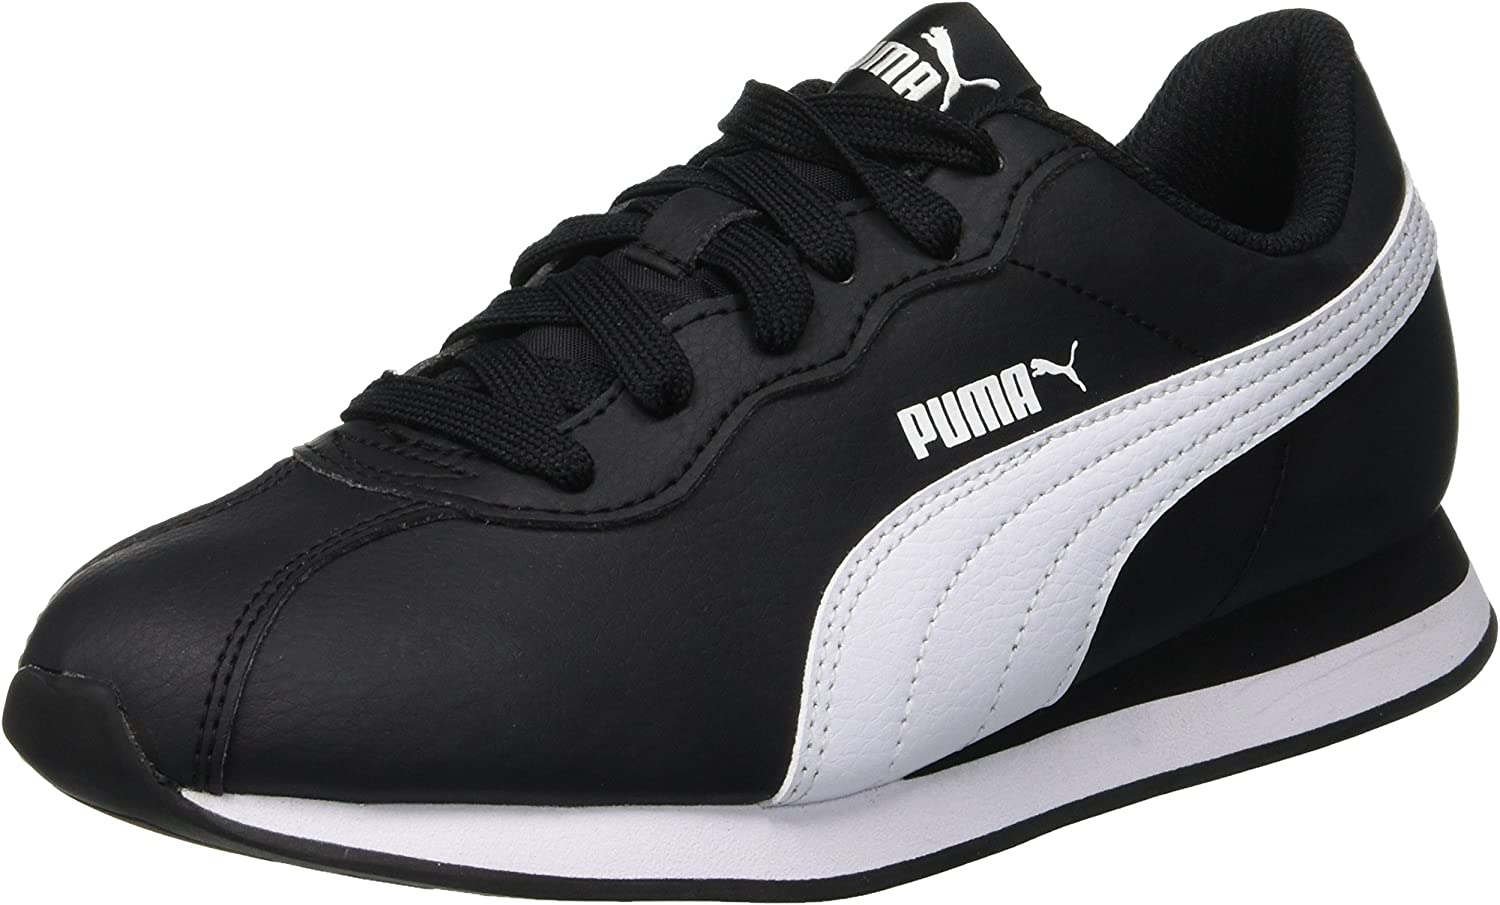 PUMA Unisex Adults Turin Ii Low-Top Sneakers